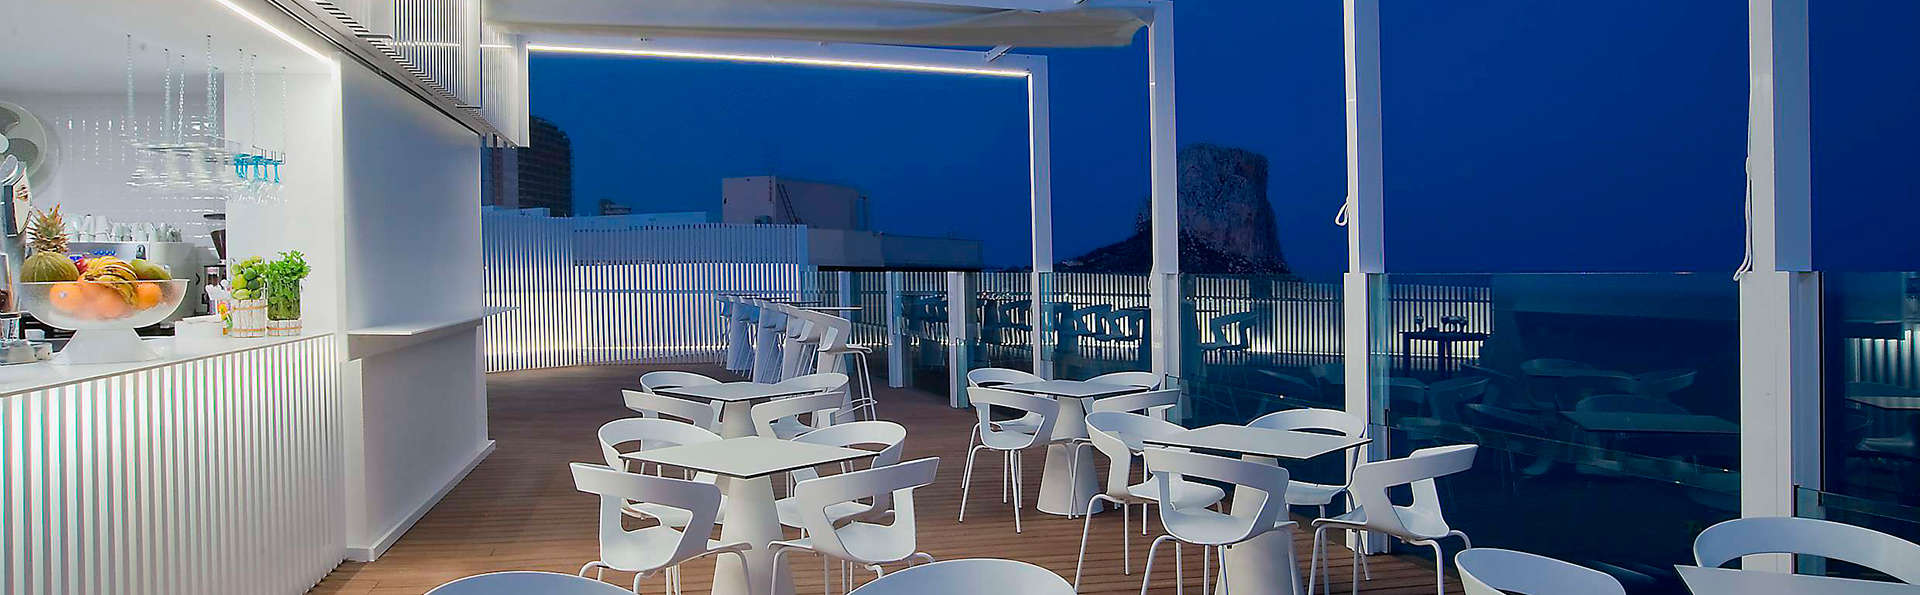 Hotel Bahía Calpe by Pierre & Vacances - EDIT_terracebar1.jpg